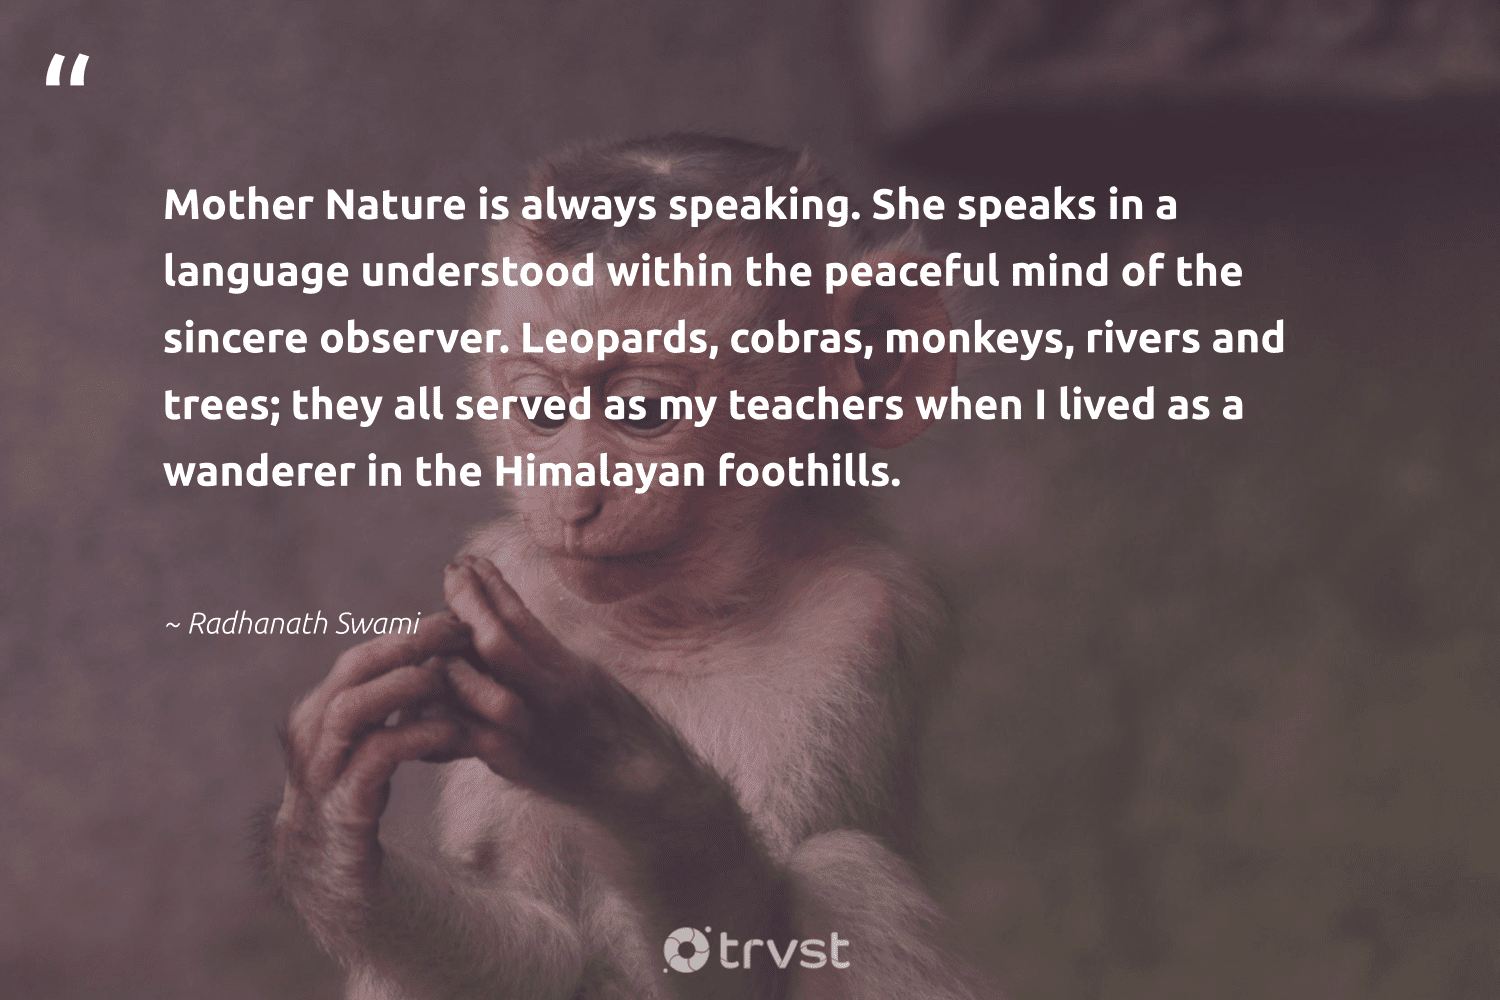 """""""Mother Nature is always speaking. She speaks in a language understood within the peaceful mind of the sincere observer. Leopards, cobras, monkeys, rivers and trees; they all served as my teachers when I lived as a wanderer in the Himalayan foothills.""""  - Radhanath Swami #trvst #quotes #nature #rivers #mothernature #leopards #monkeys #environment #earth #perfectnature #noplanetb #changetheworld"""